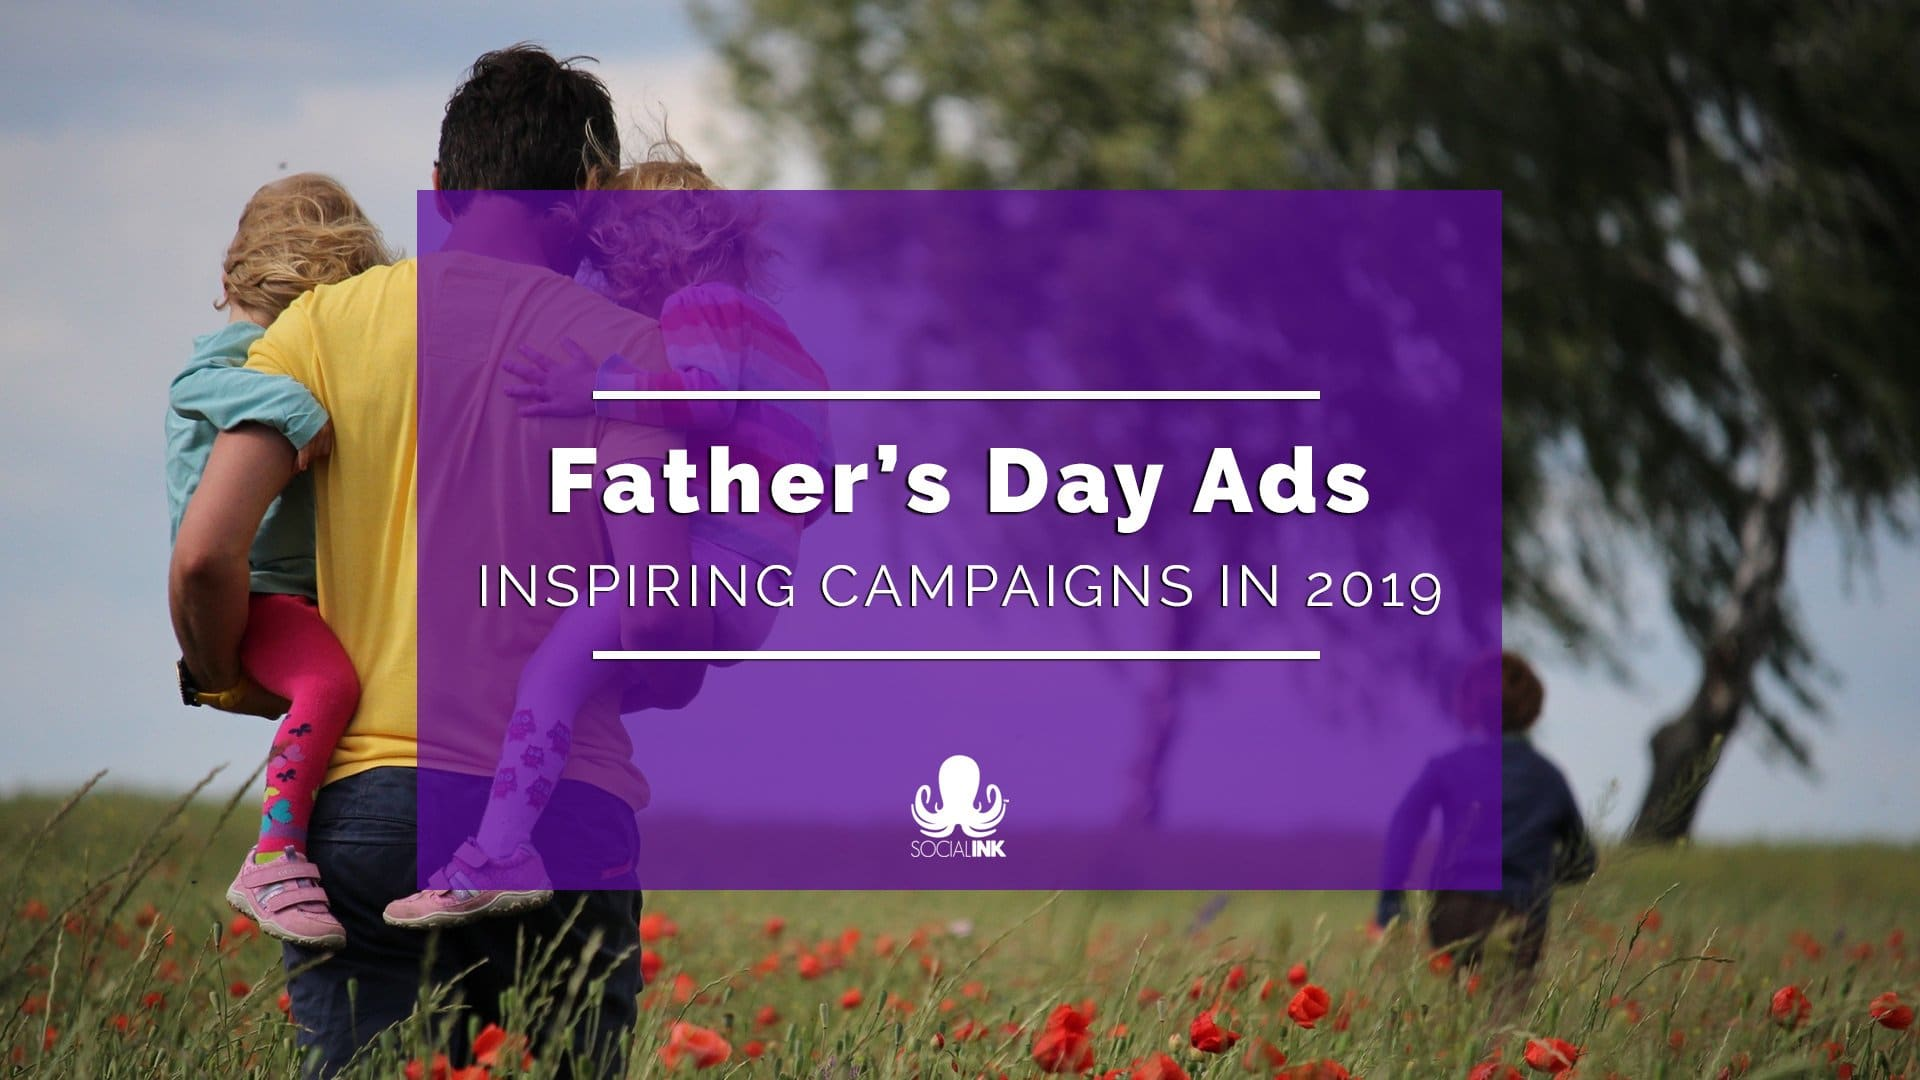 6 Inspiring Father's Day Ads and Campaigns in 2019